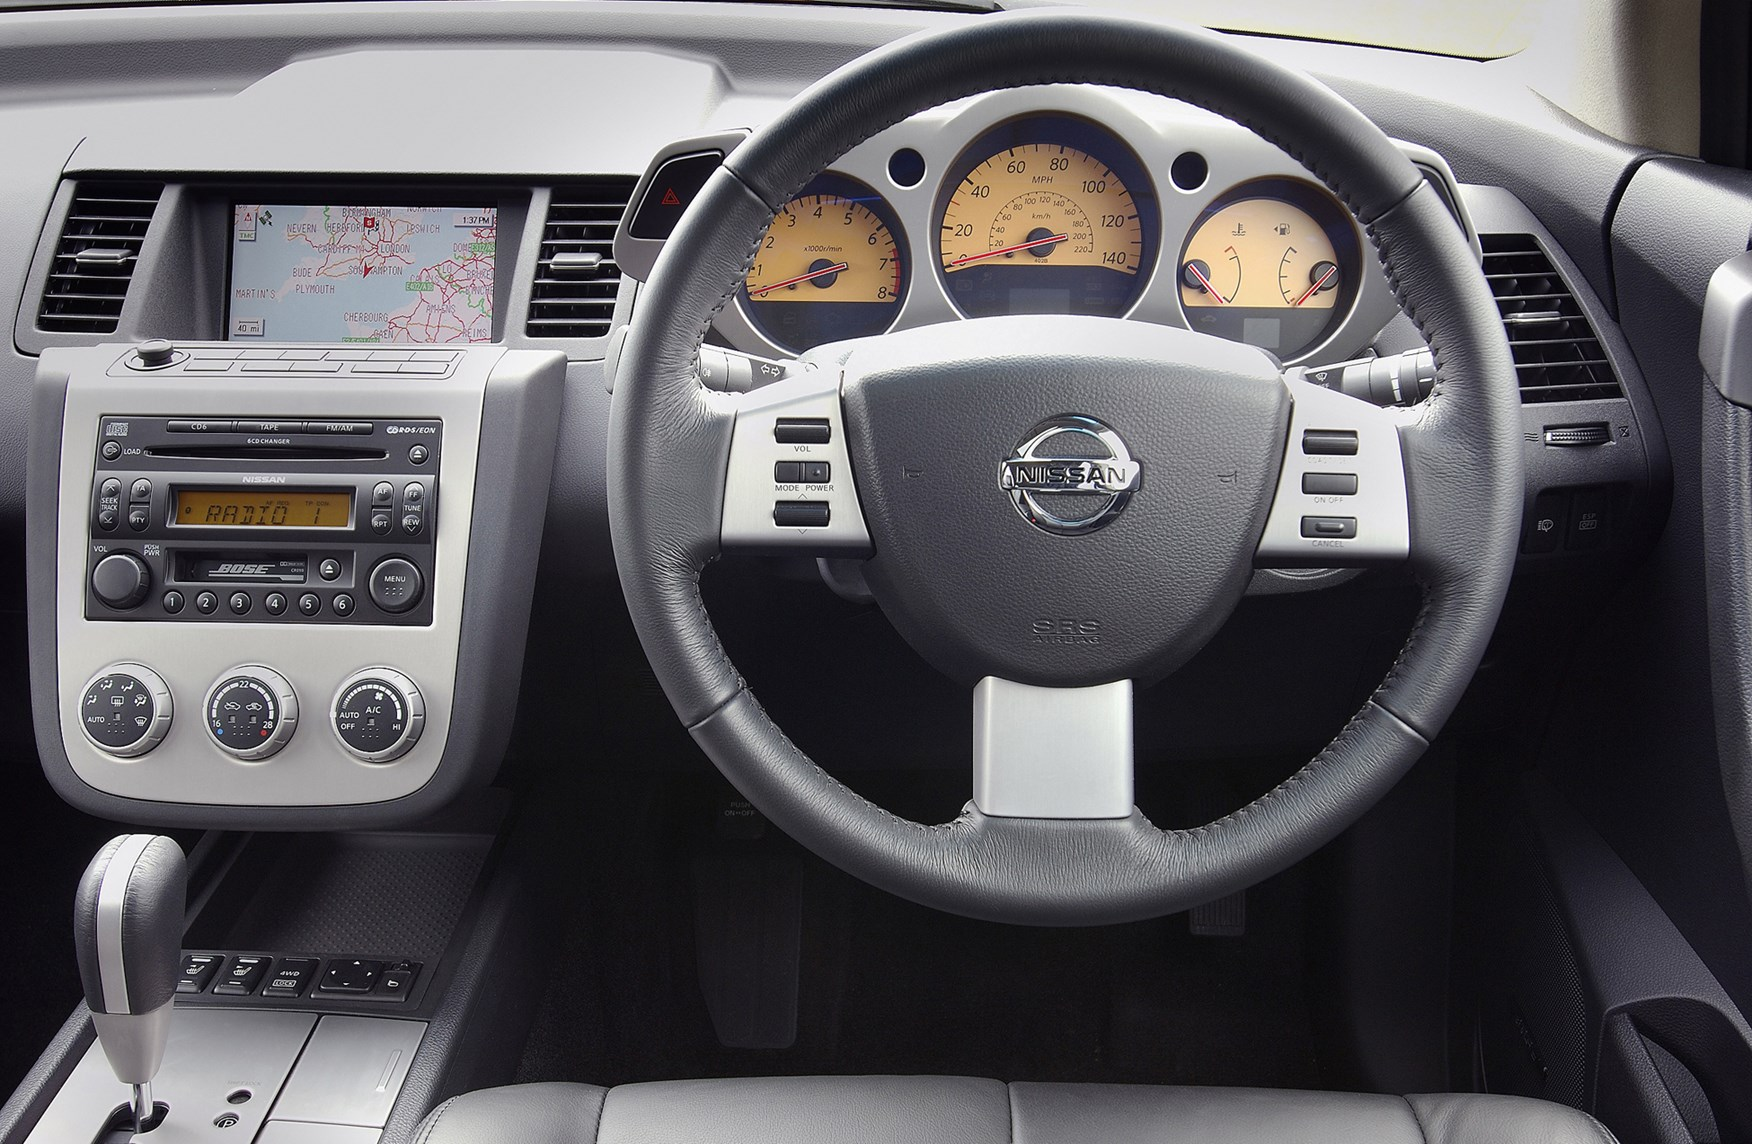 View All Images Of The Nissan Murano 05 08